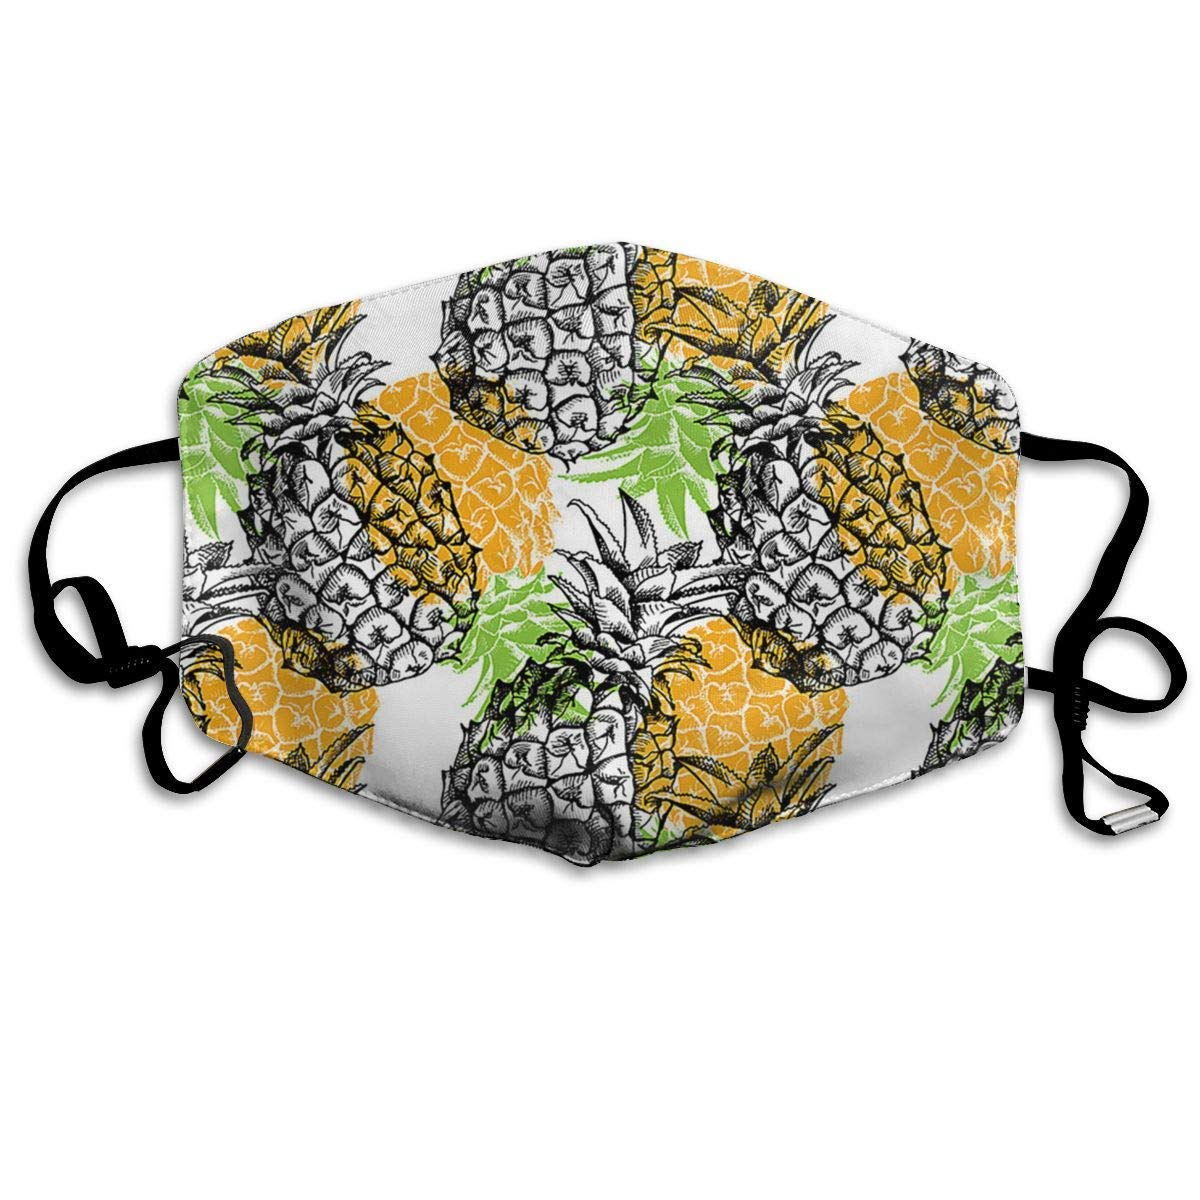 Daawqee Mascarillas, Yellow Pineapple Face Masks Breathable Dust Filter Masks Mouth Cover Masks with Elastic Ear Loop